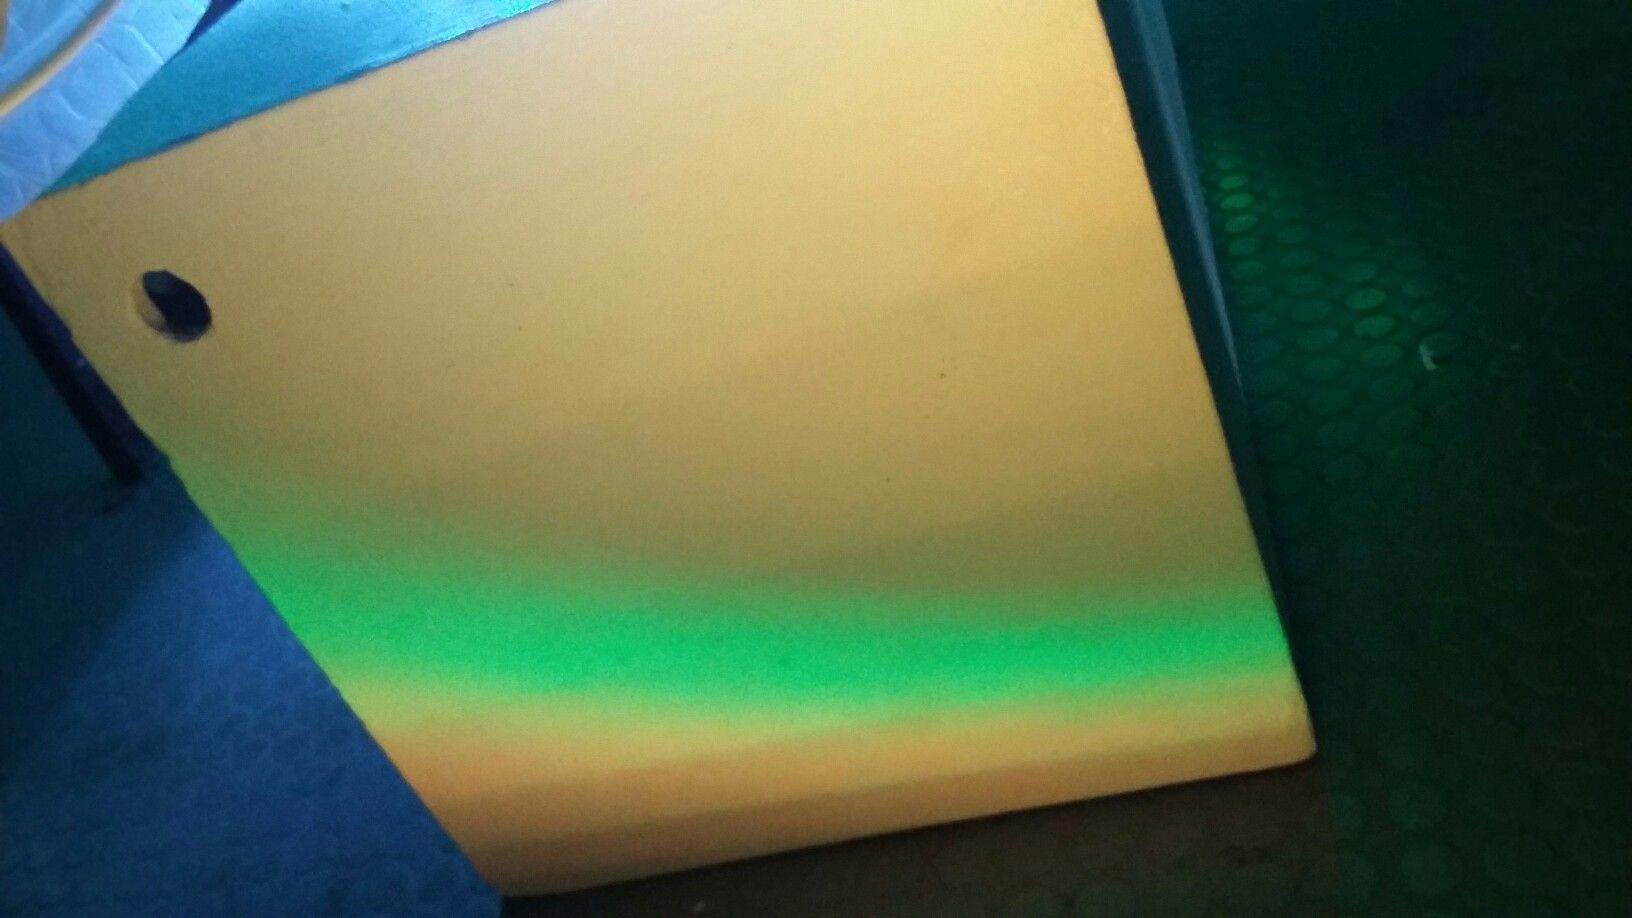 multi coloured light shining onto box - transition of yellow/orange to green